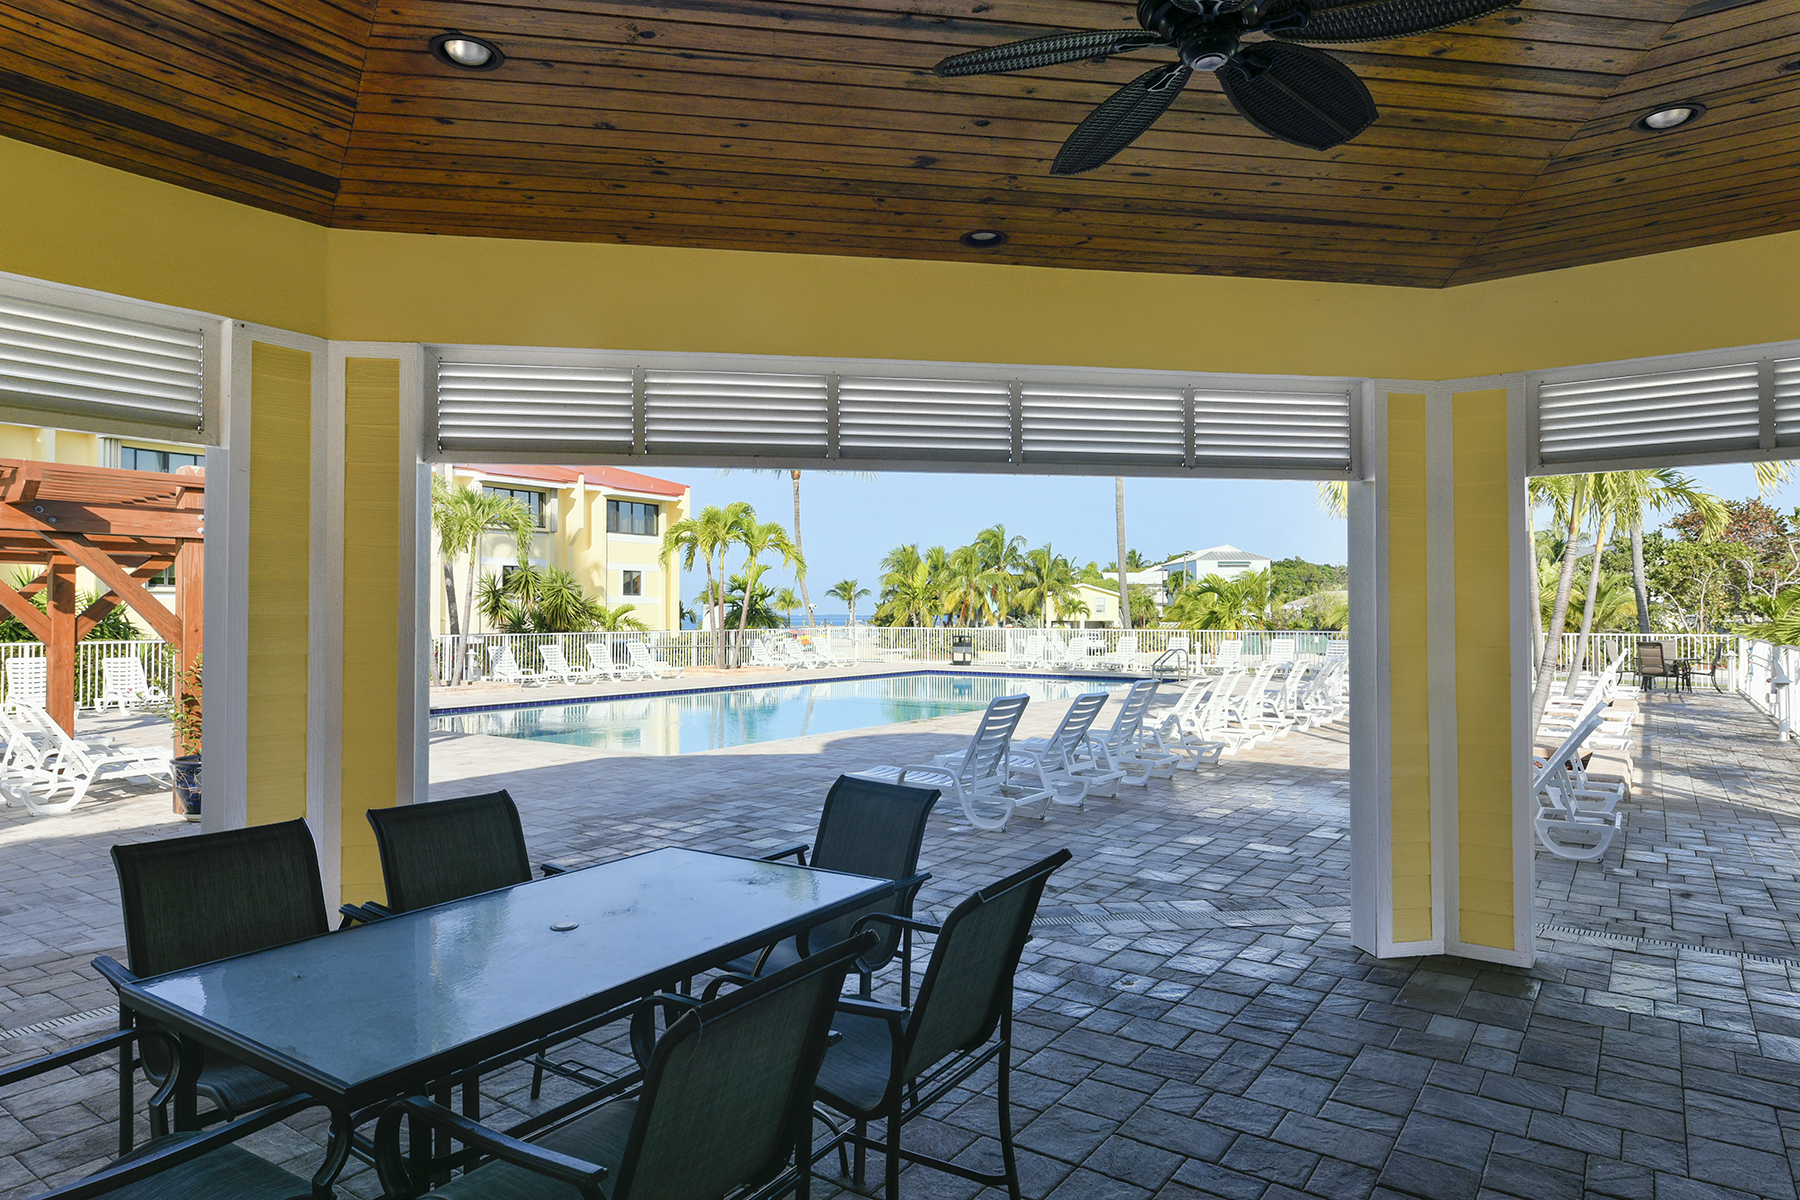 Additional photo for property listing at Futura Yacht Club Unit 88540  Overseas Hwy A 403 Plantation Key, Florida 33070 United States